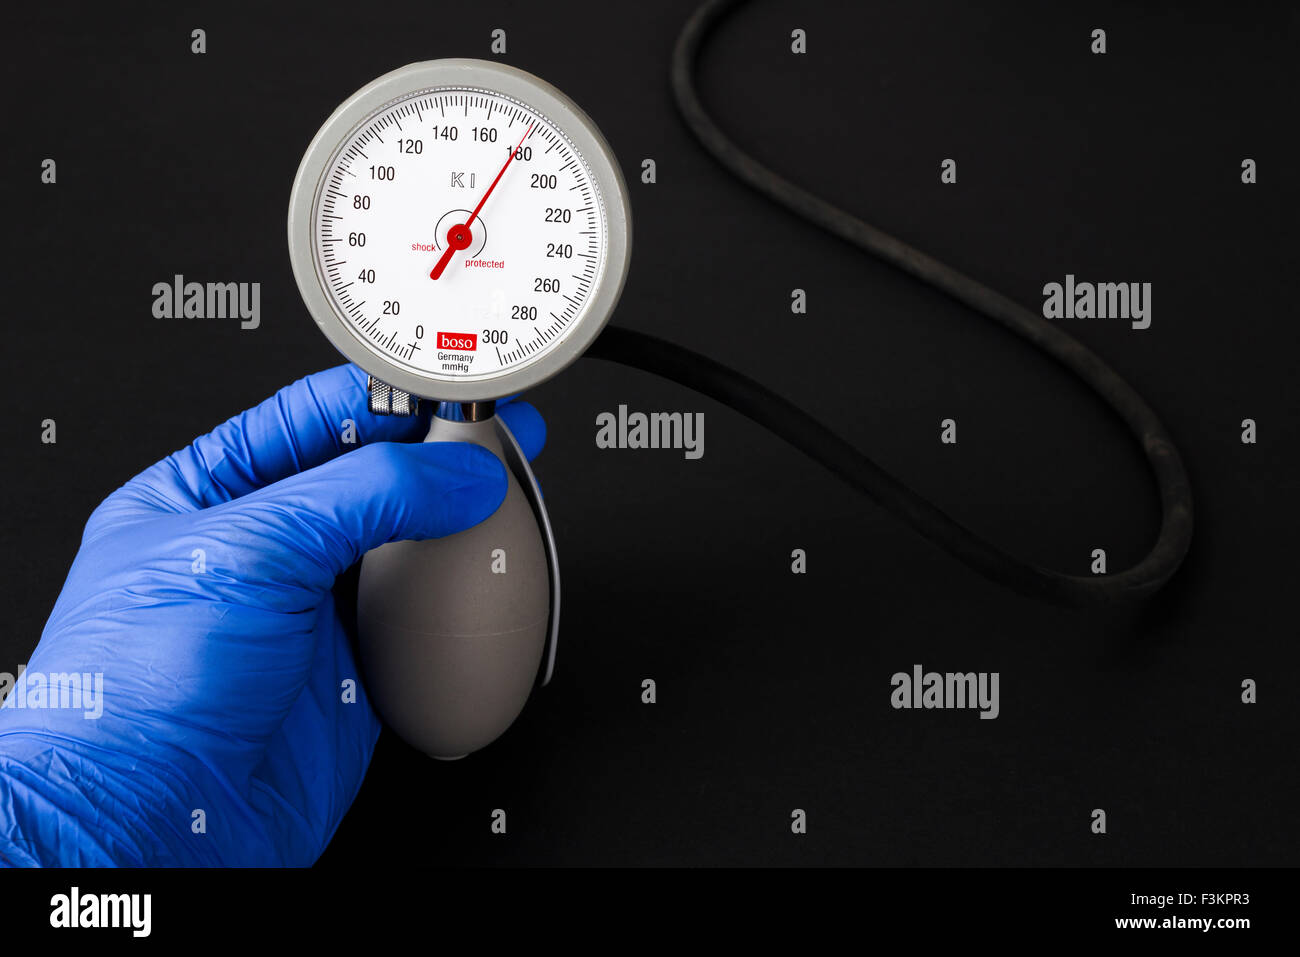 A hand in a blue medical glove is holding a sphygomanometer, blood pressure meter, for medical use, indicating high - Stock Image